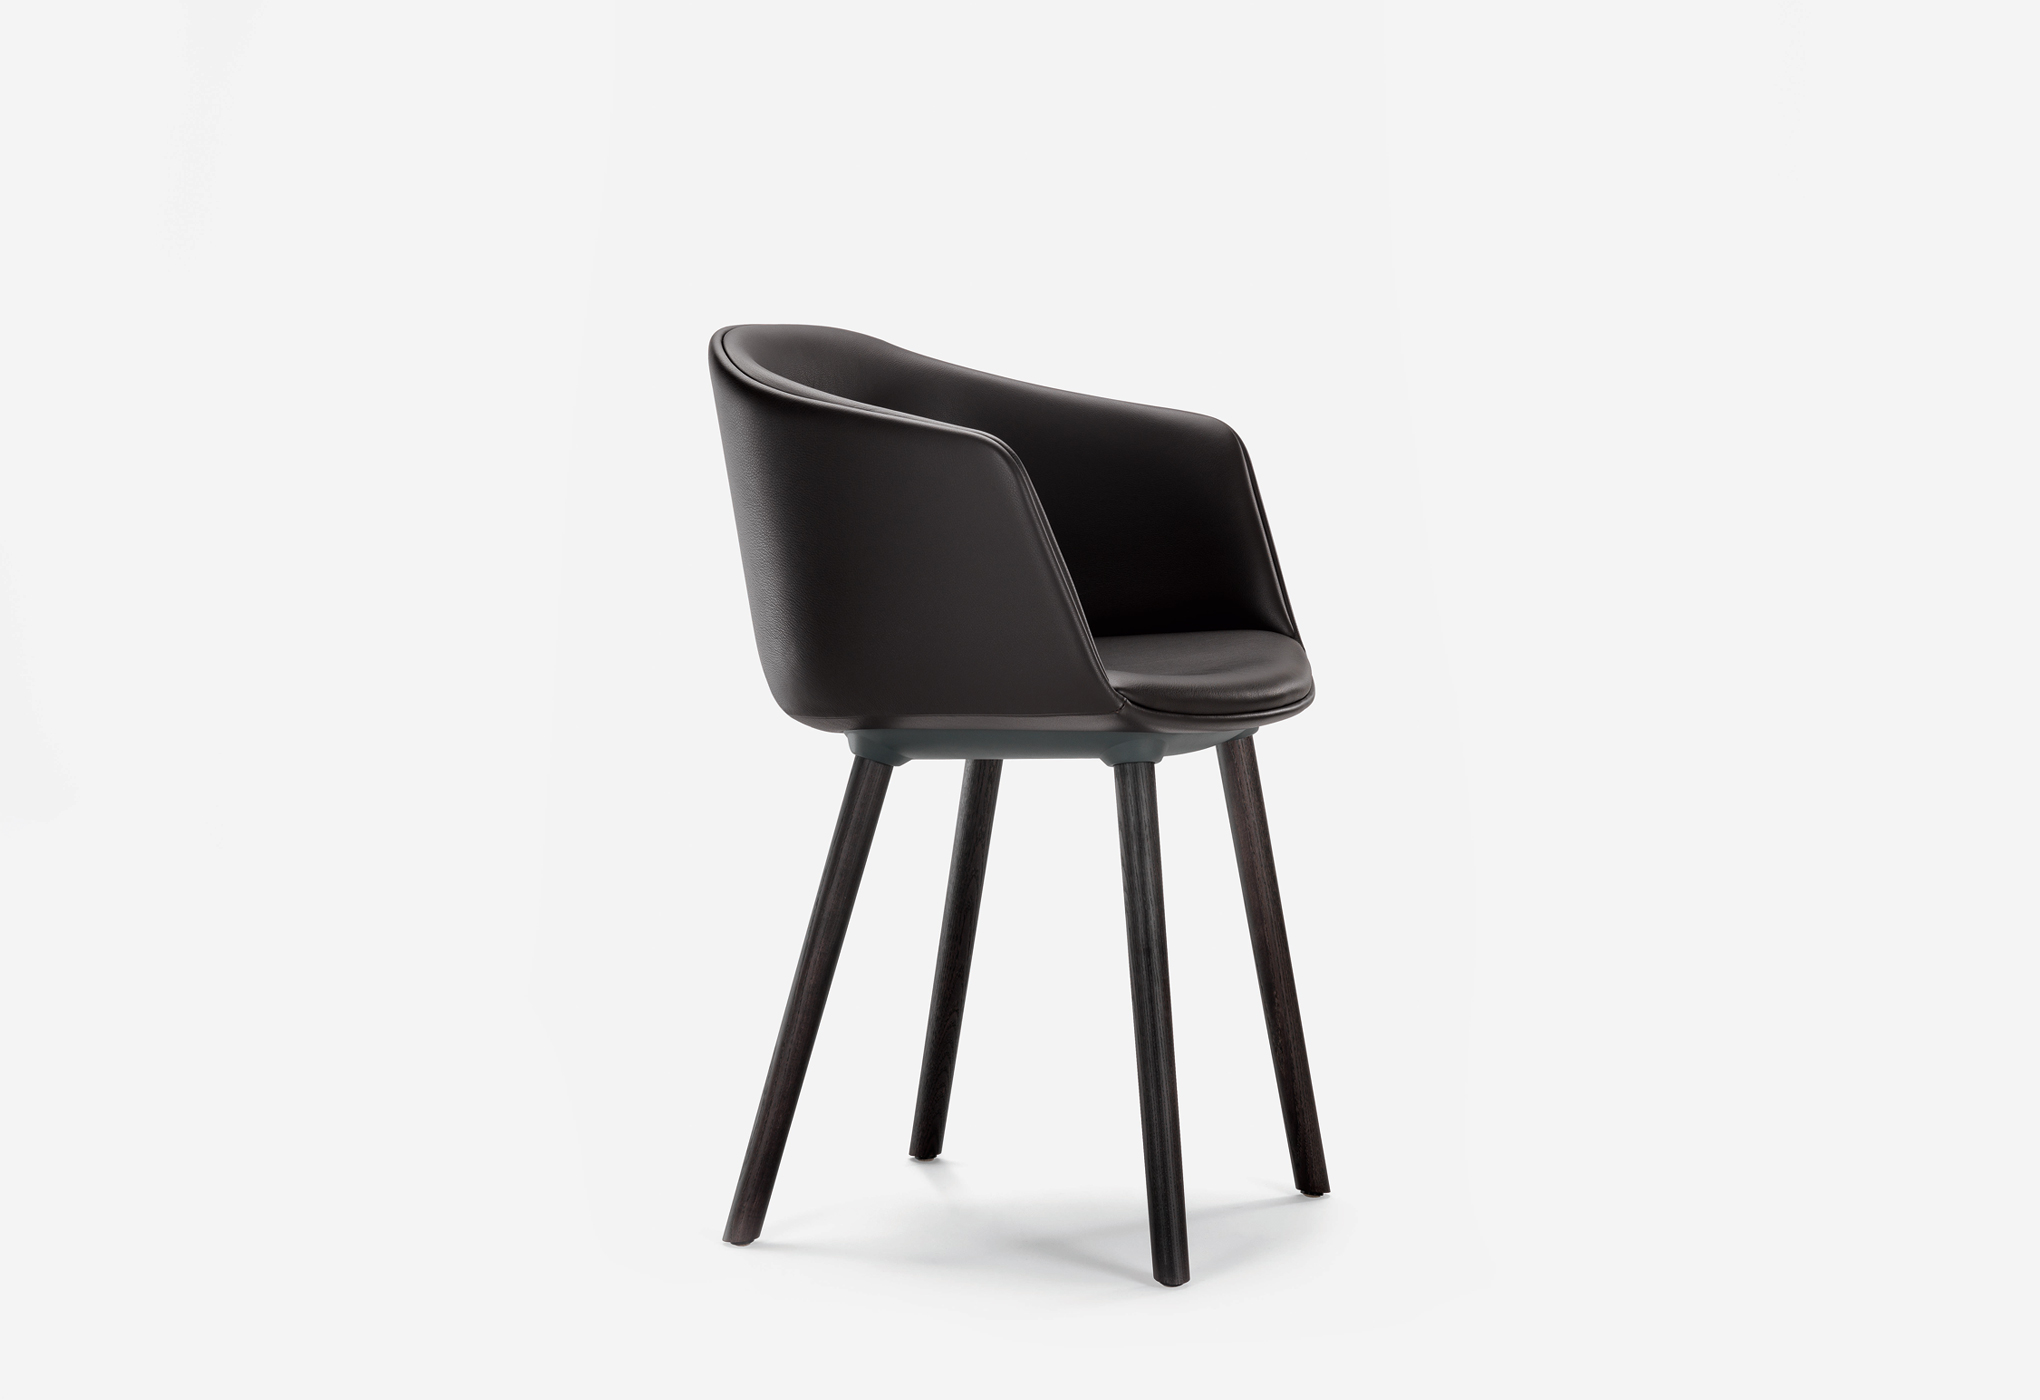 Re-Max-chair-2018